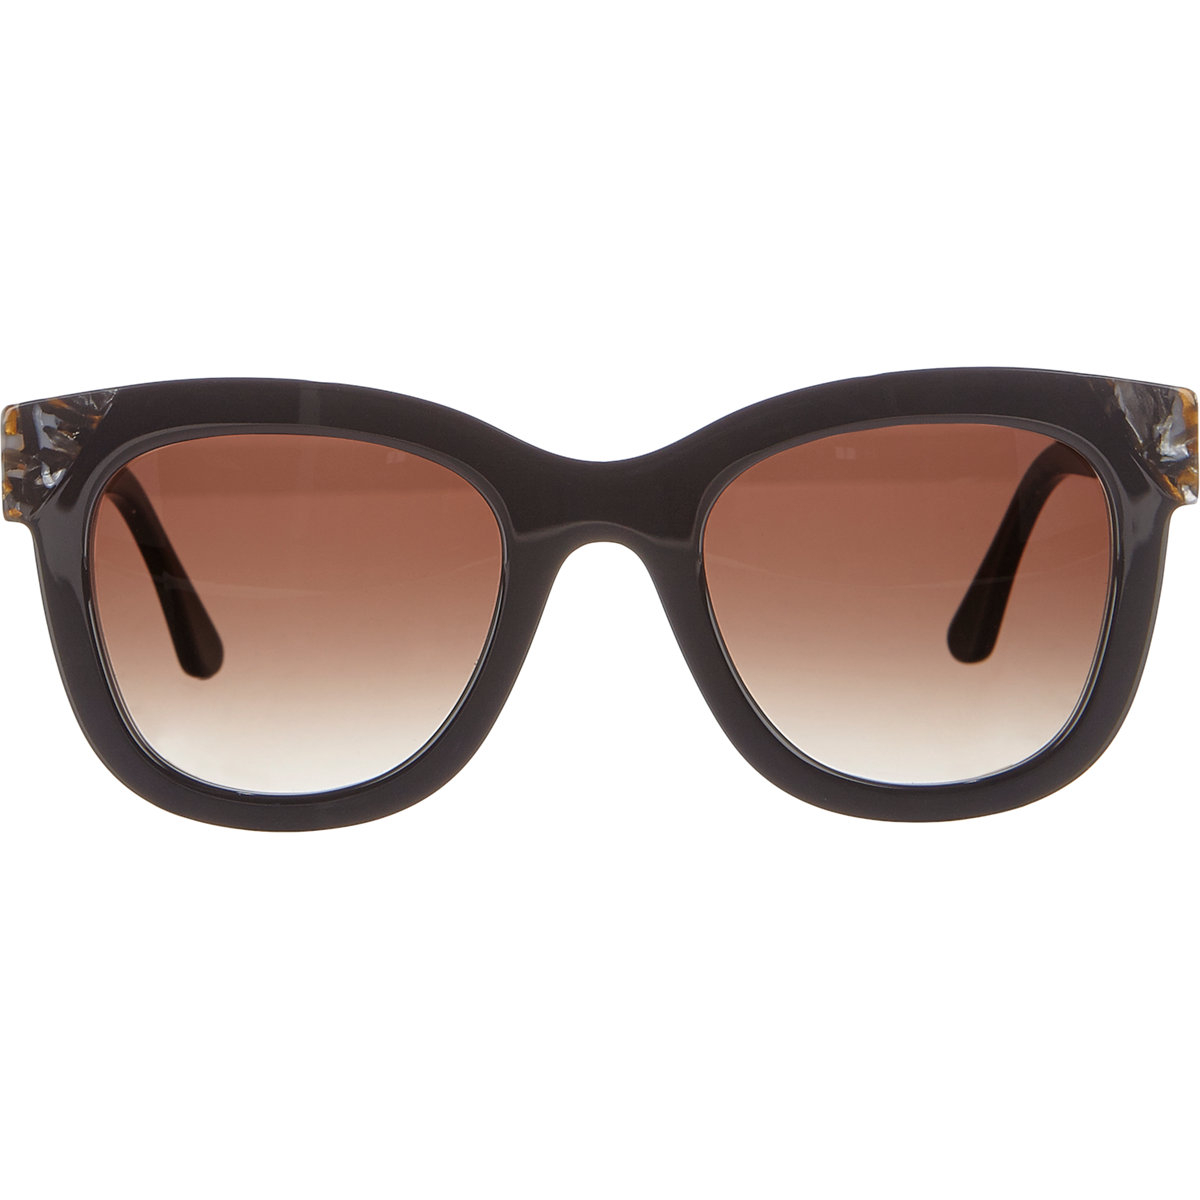 Thierry lasry chromaty Sunglasses in Black